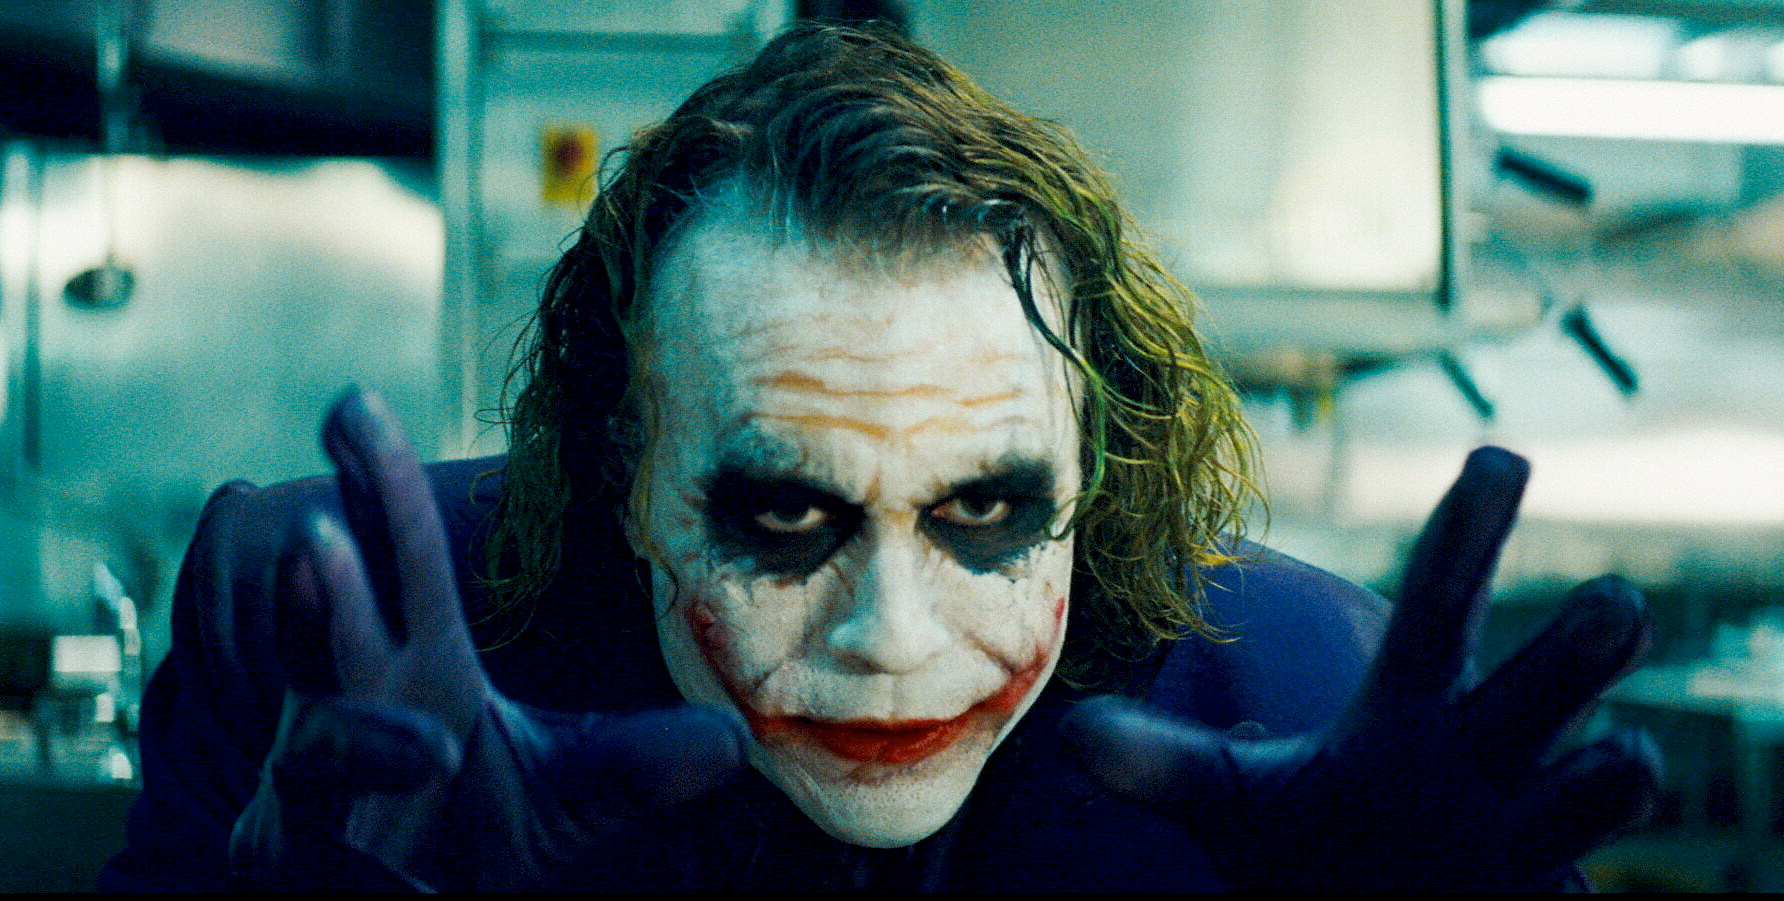 'The Dark Knight' Theory Proposes That The Joker Actually Saved Gotham City